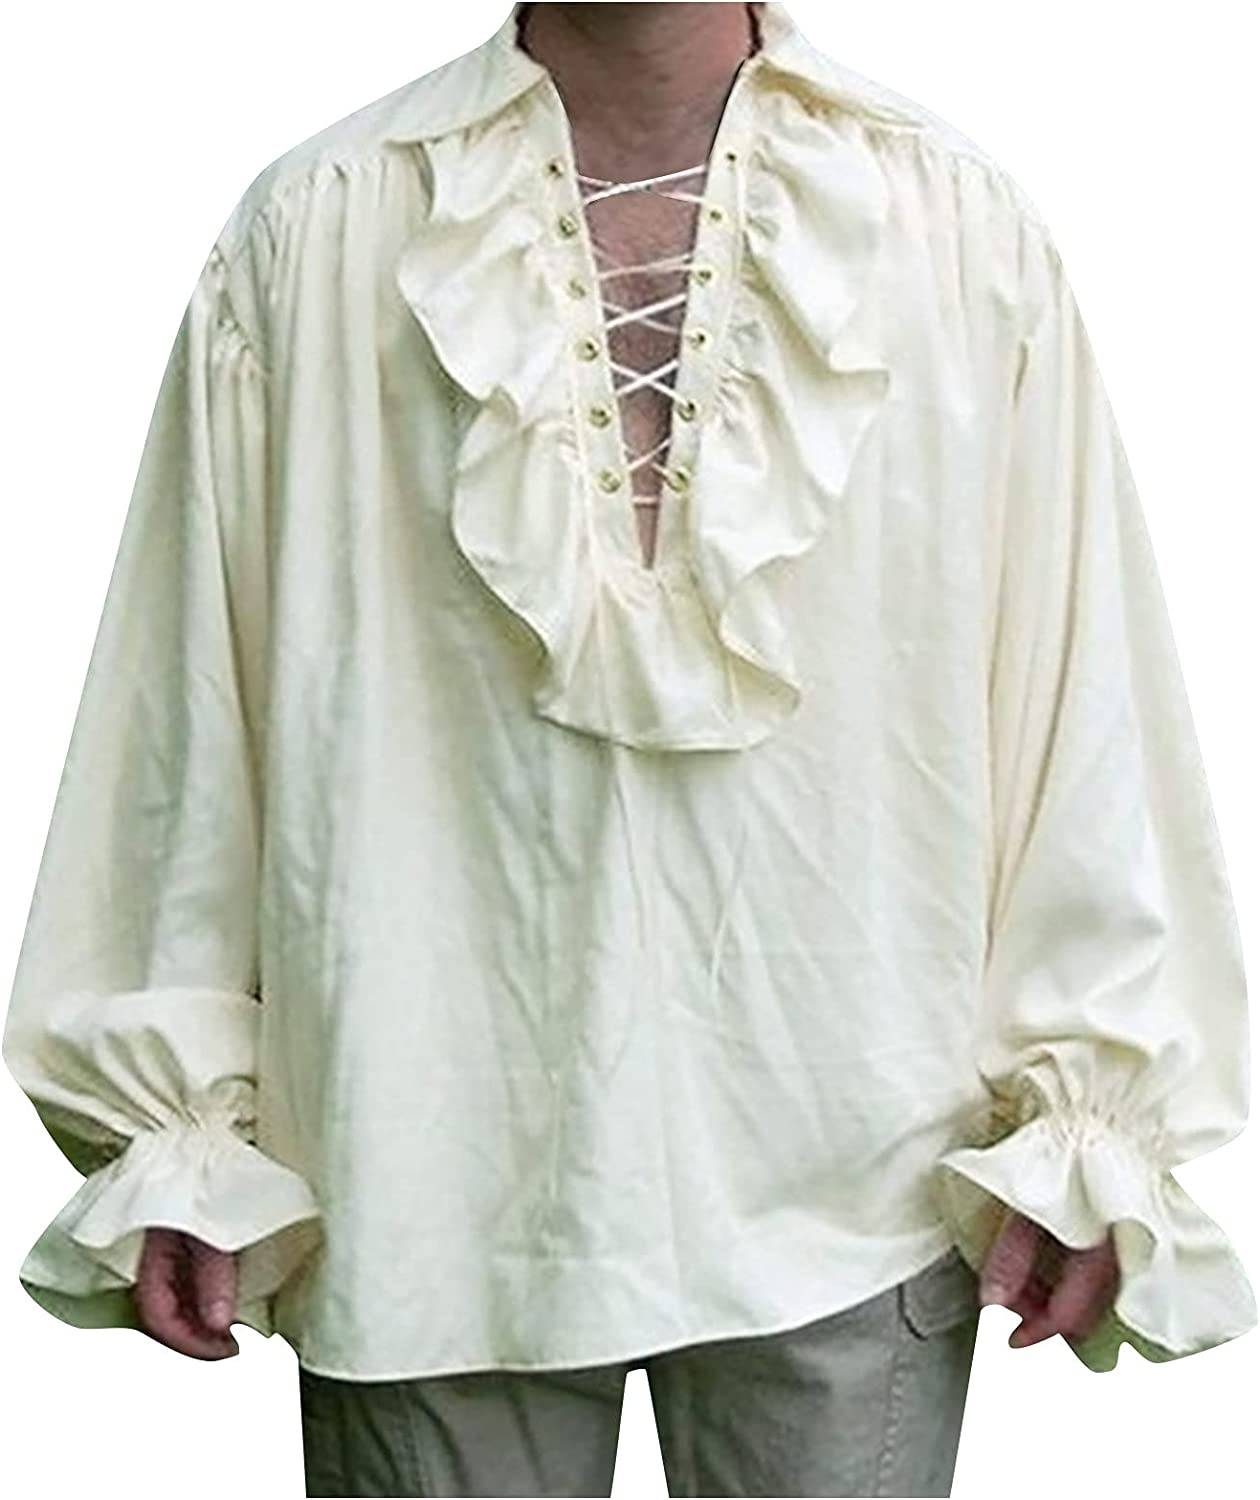 Ultra-Cheap Deals Mens Gothic Shirt Long Sleeve Costume Cosplay Tops Sale Special Price Dress Shirts